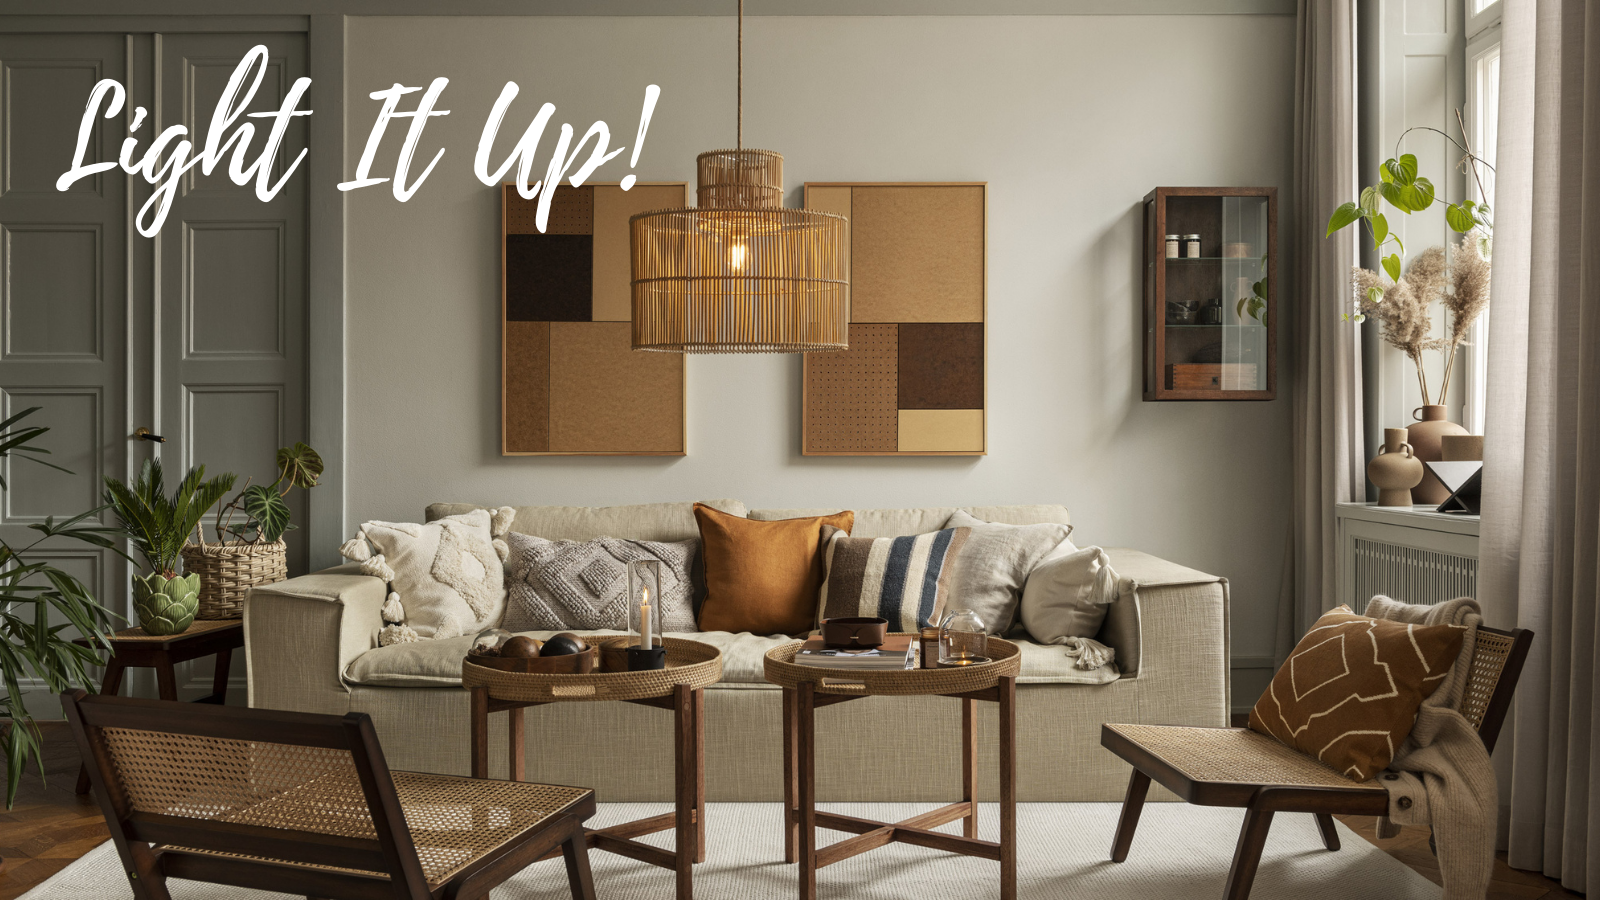 Light It Up! | On-Trend Lighting Options - Featured 2